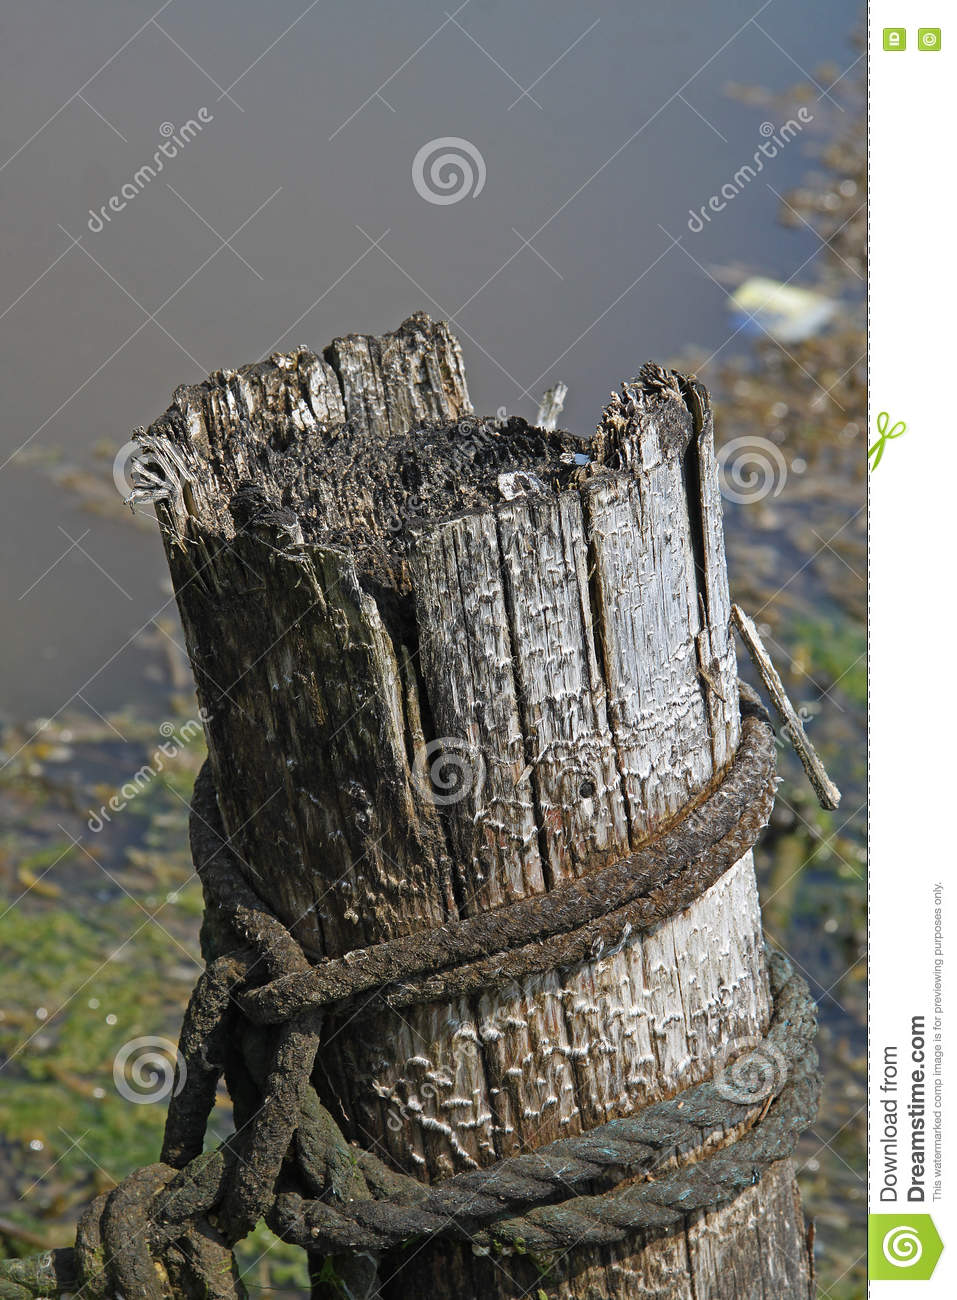 Wooden Post Texture detail of old wooden post with rope stock photo - image: 73509433